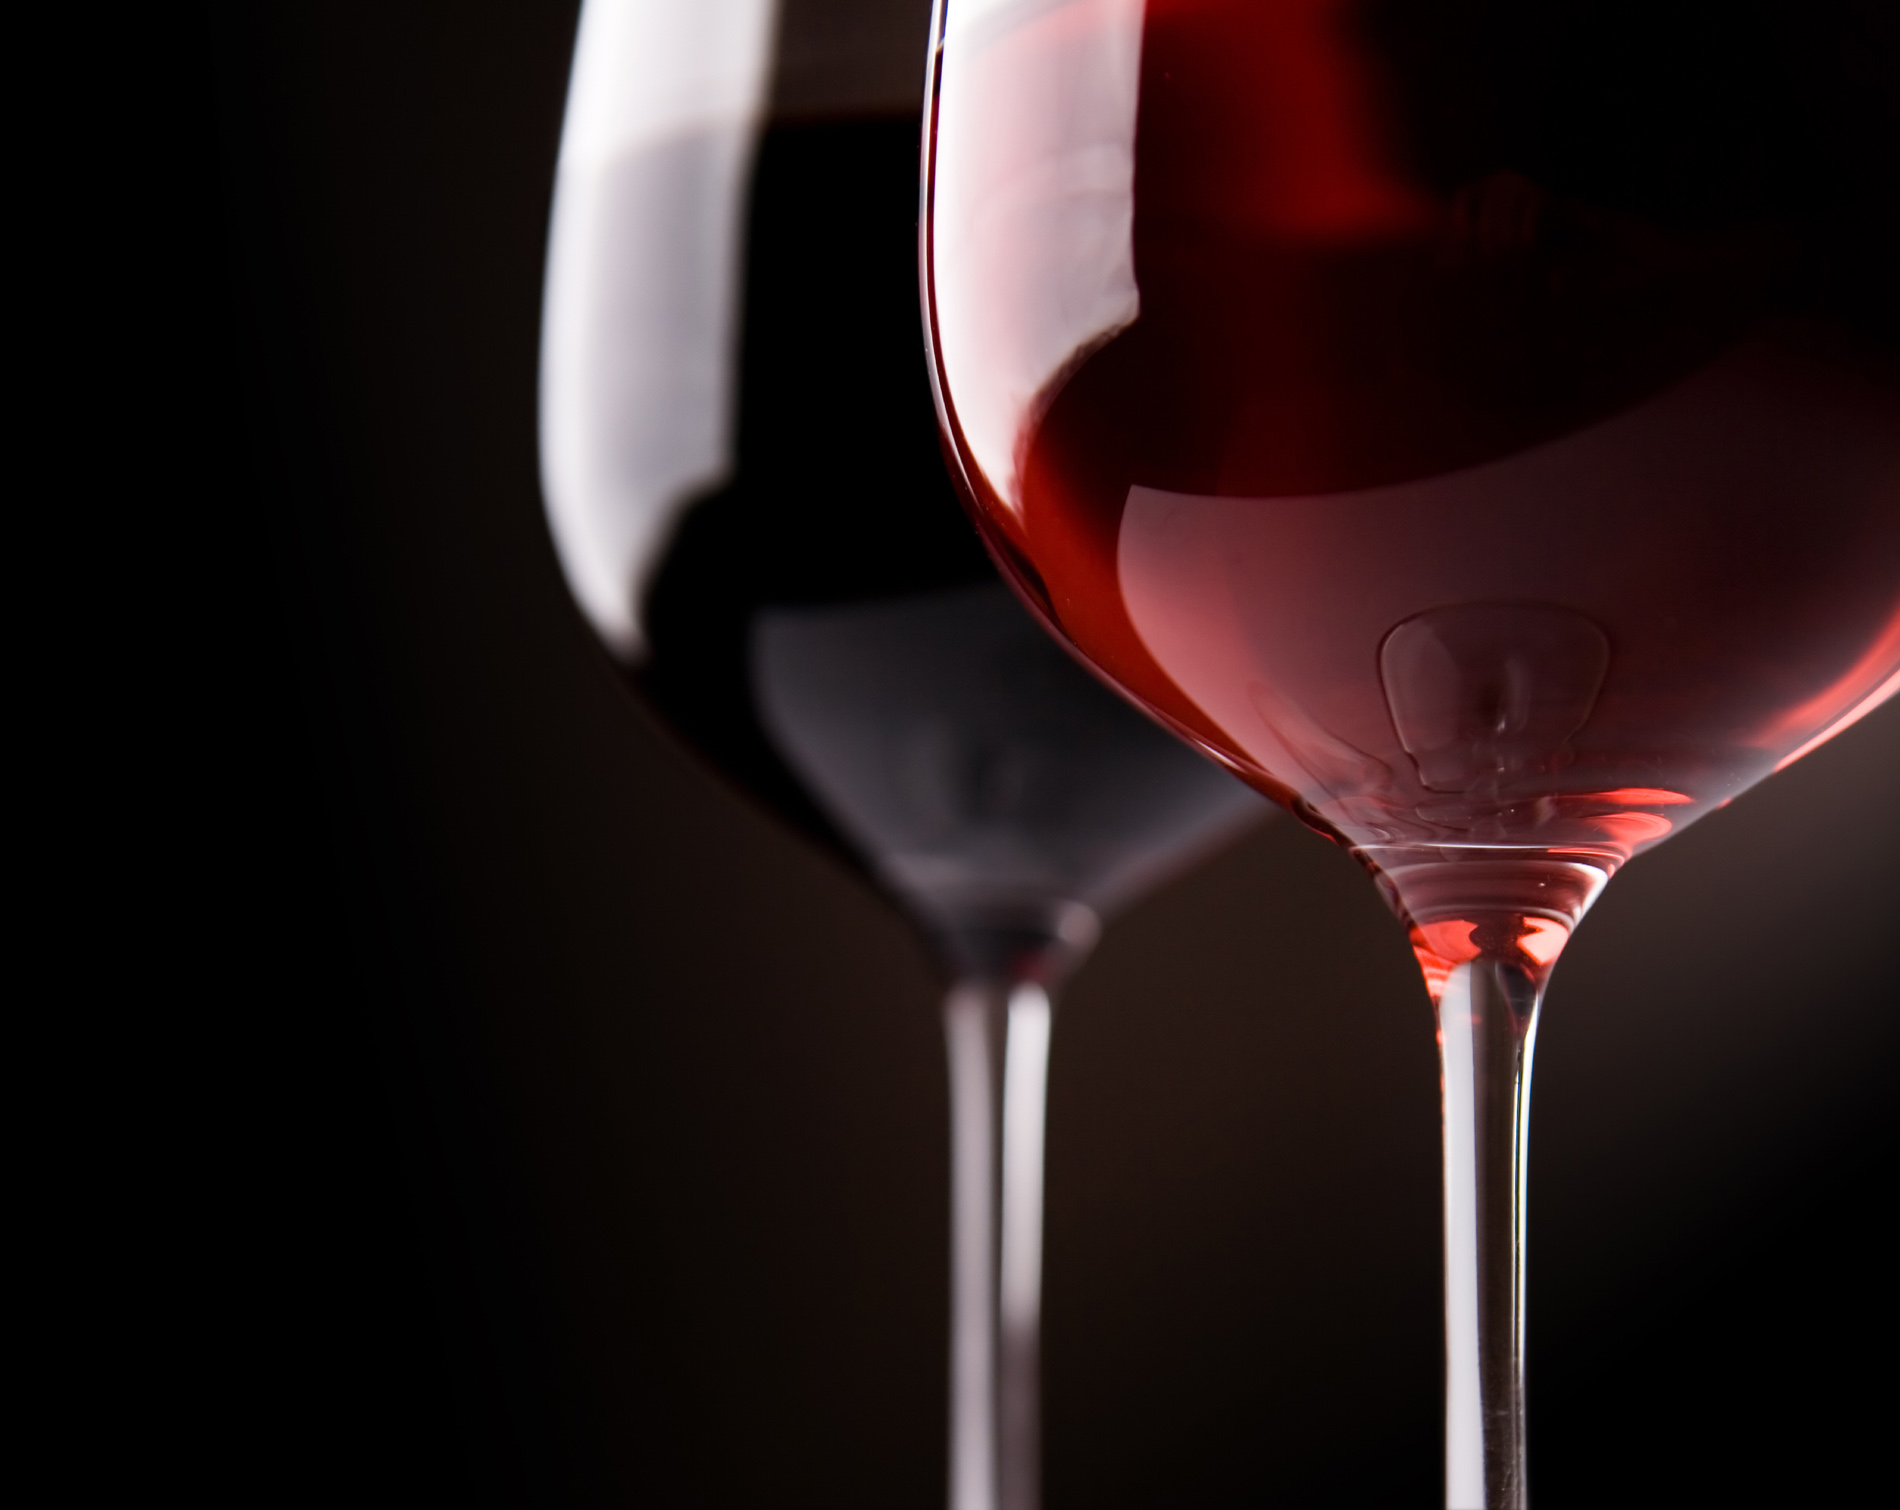 Pour red wine goblet 52580